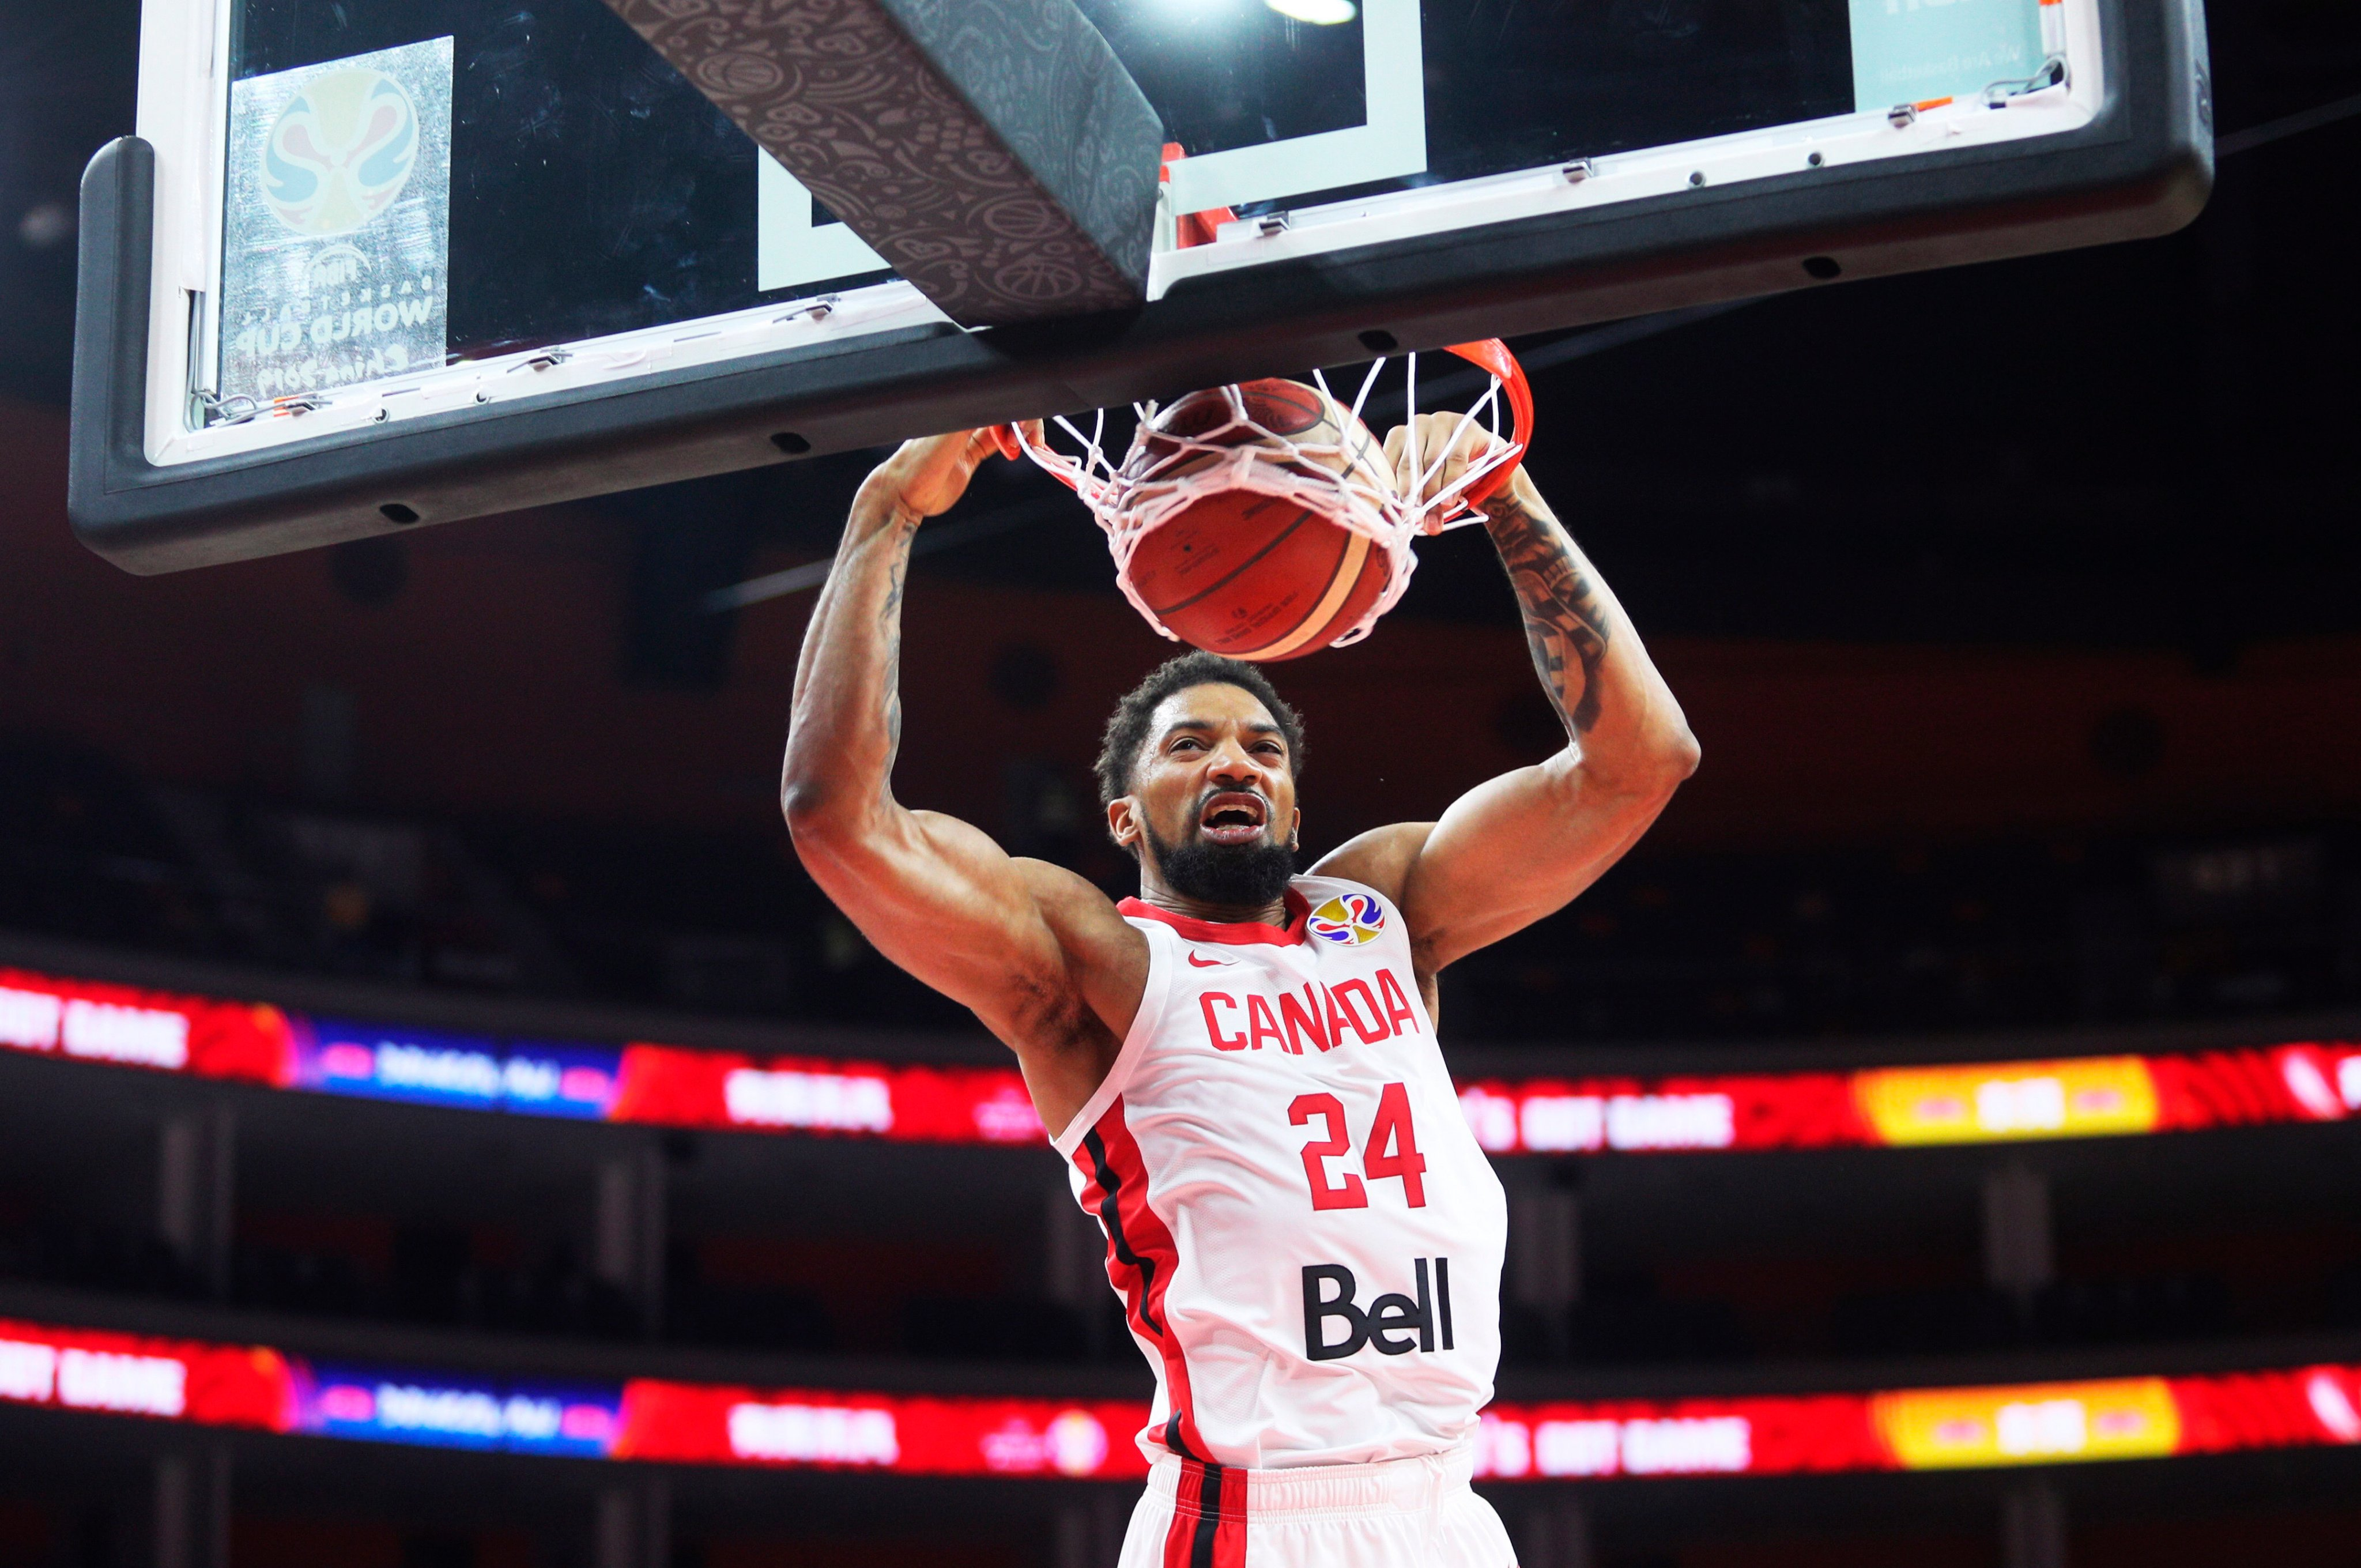 Canada downs Senegal for first win at FIBA Basketball World Cup 2019